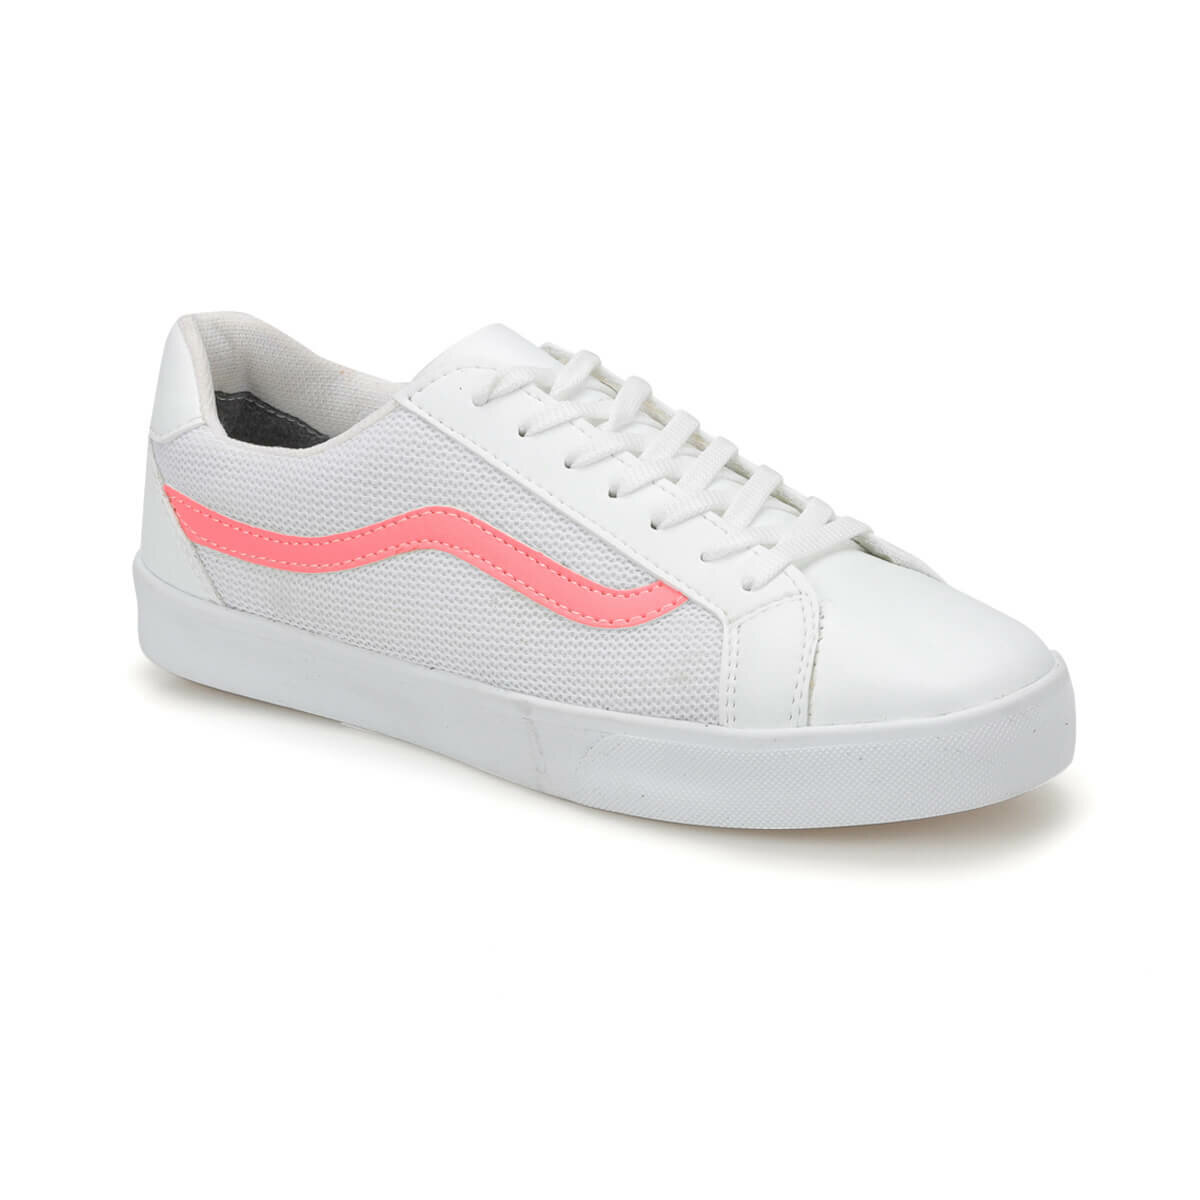 FLO CS19043 Pink Women 'S Sneaker Shoes Art Bella